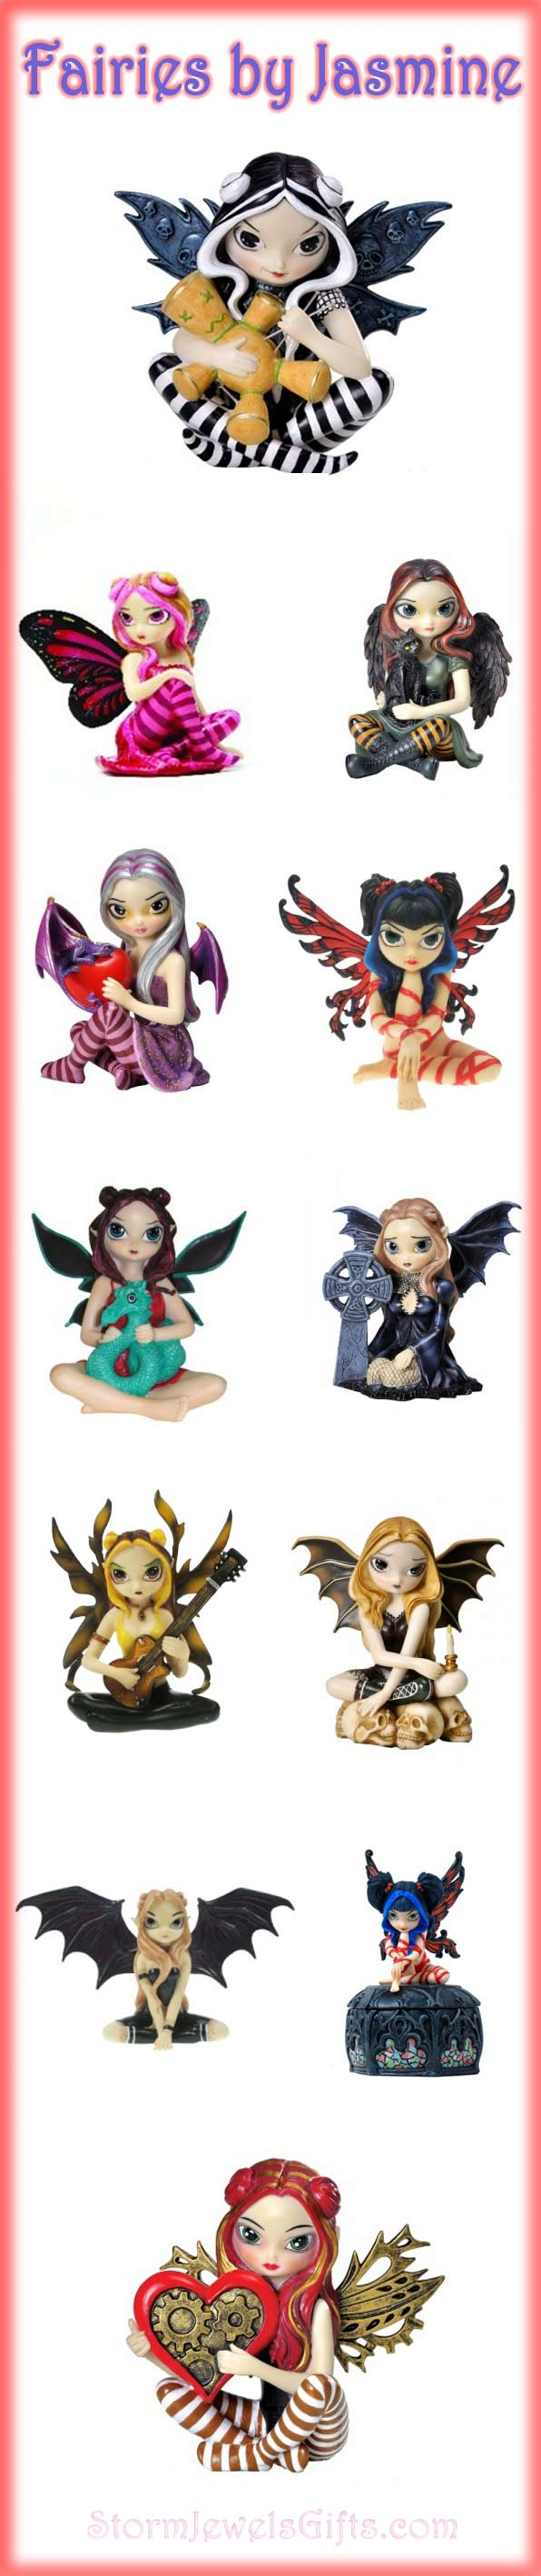 Fairy Figurines by Jasmine